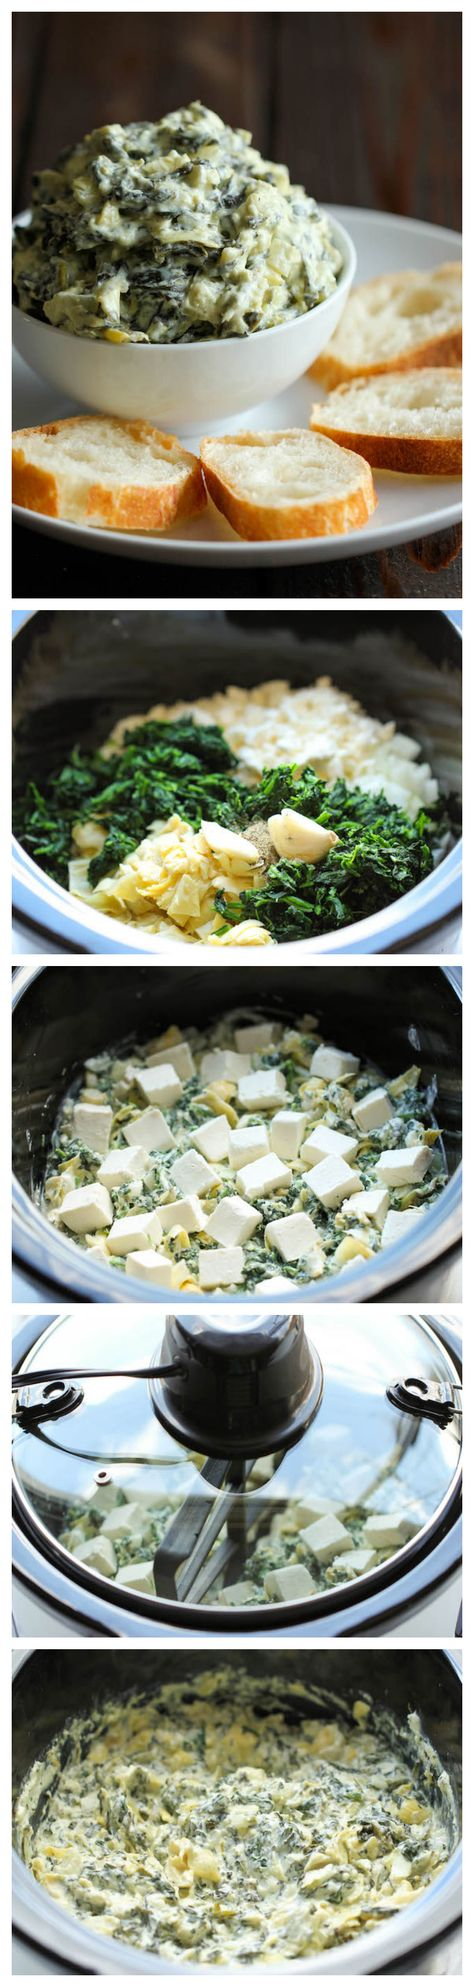 Slow Cooker Spinach and Artichoke Dip - Simply throw everything in the crockpot for the easiest, most effortless spinach and artichoke dip. It doesn't get easier than that!